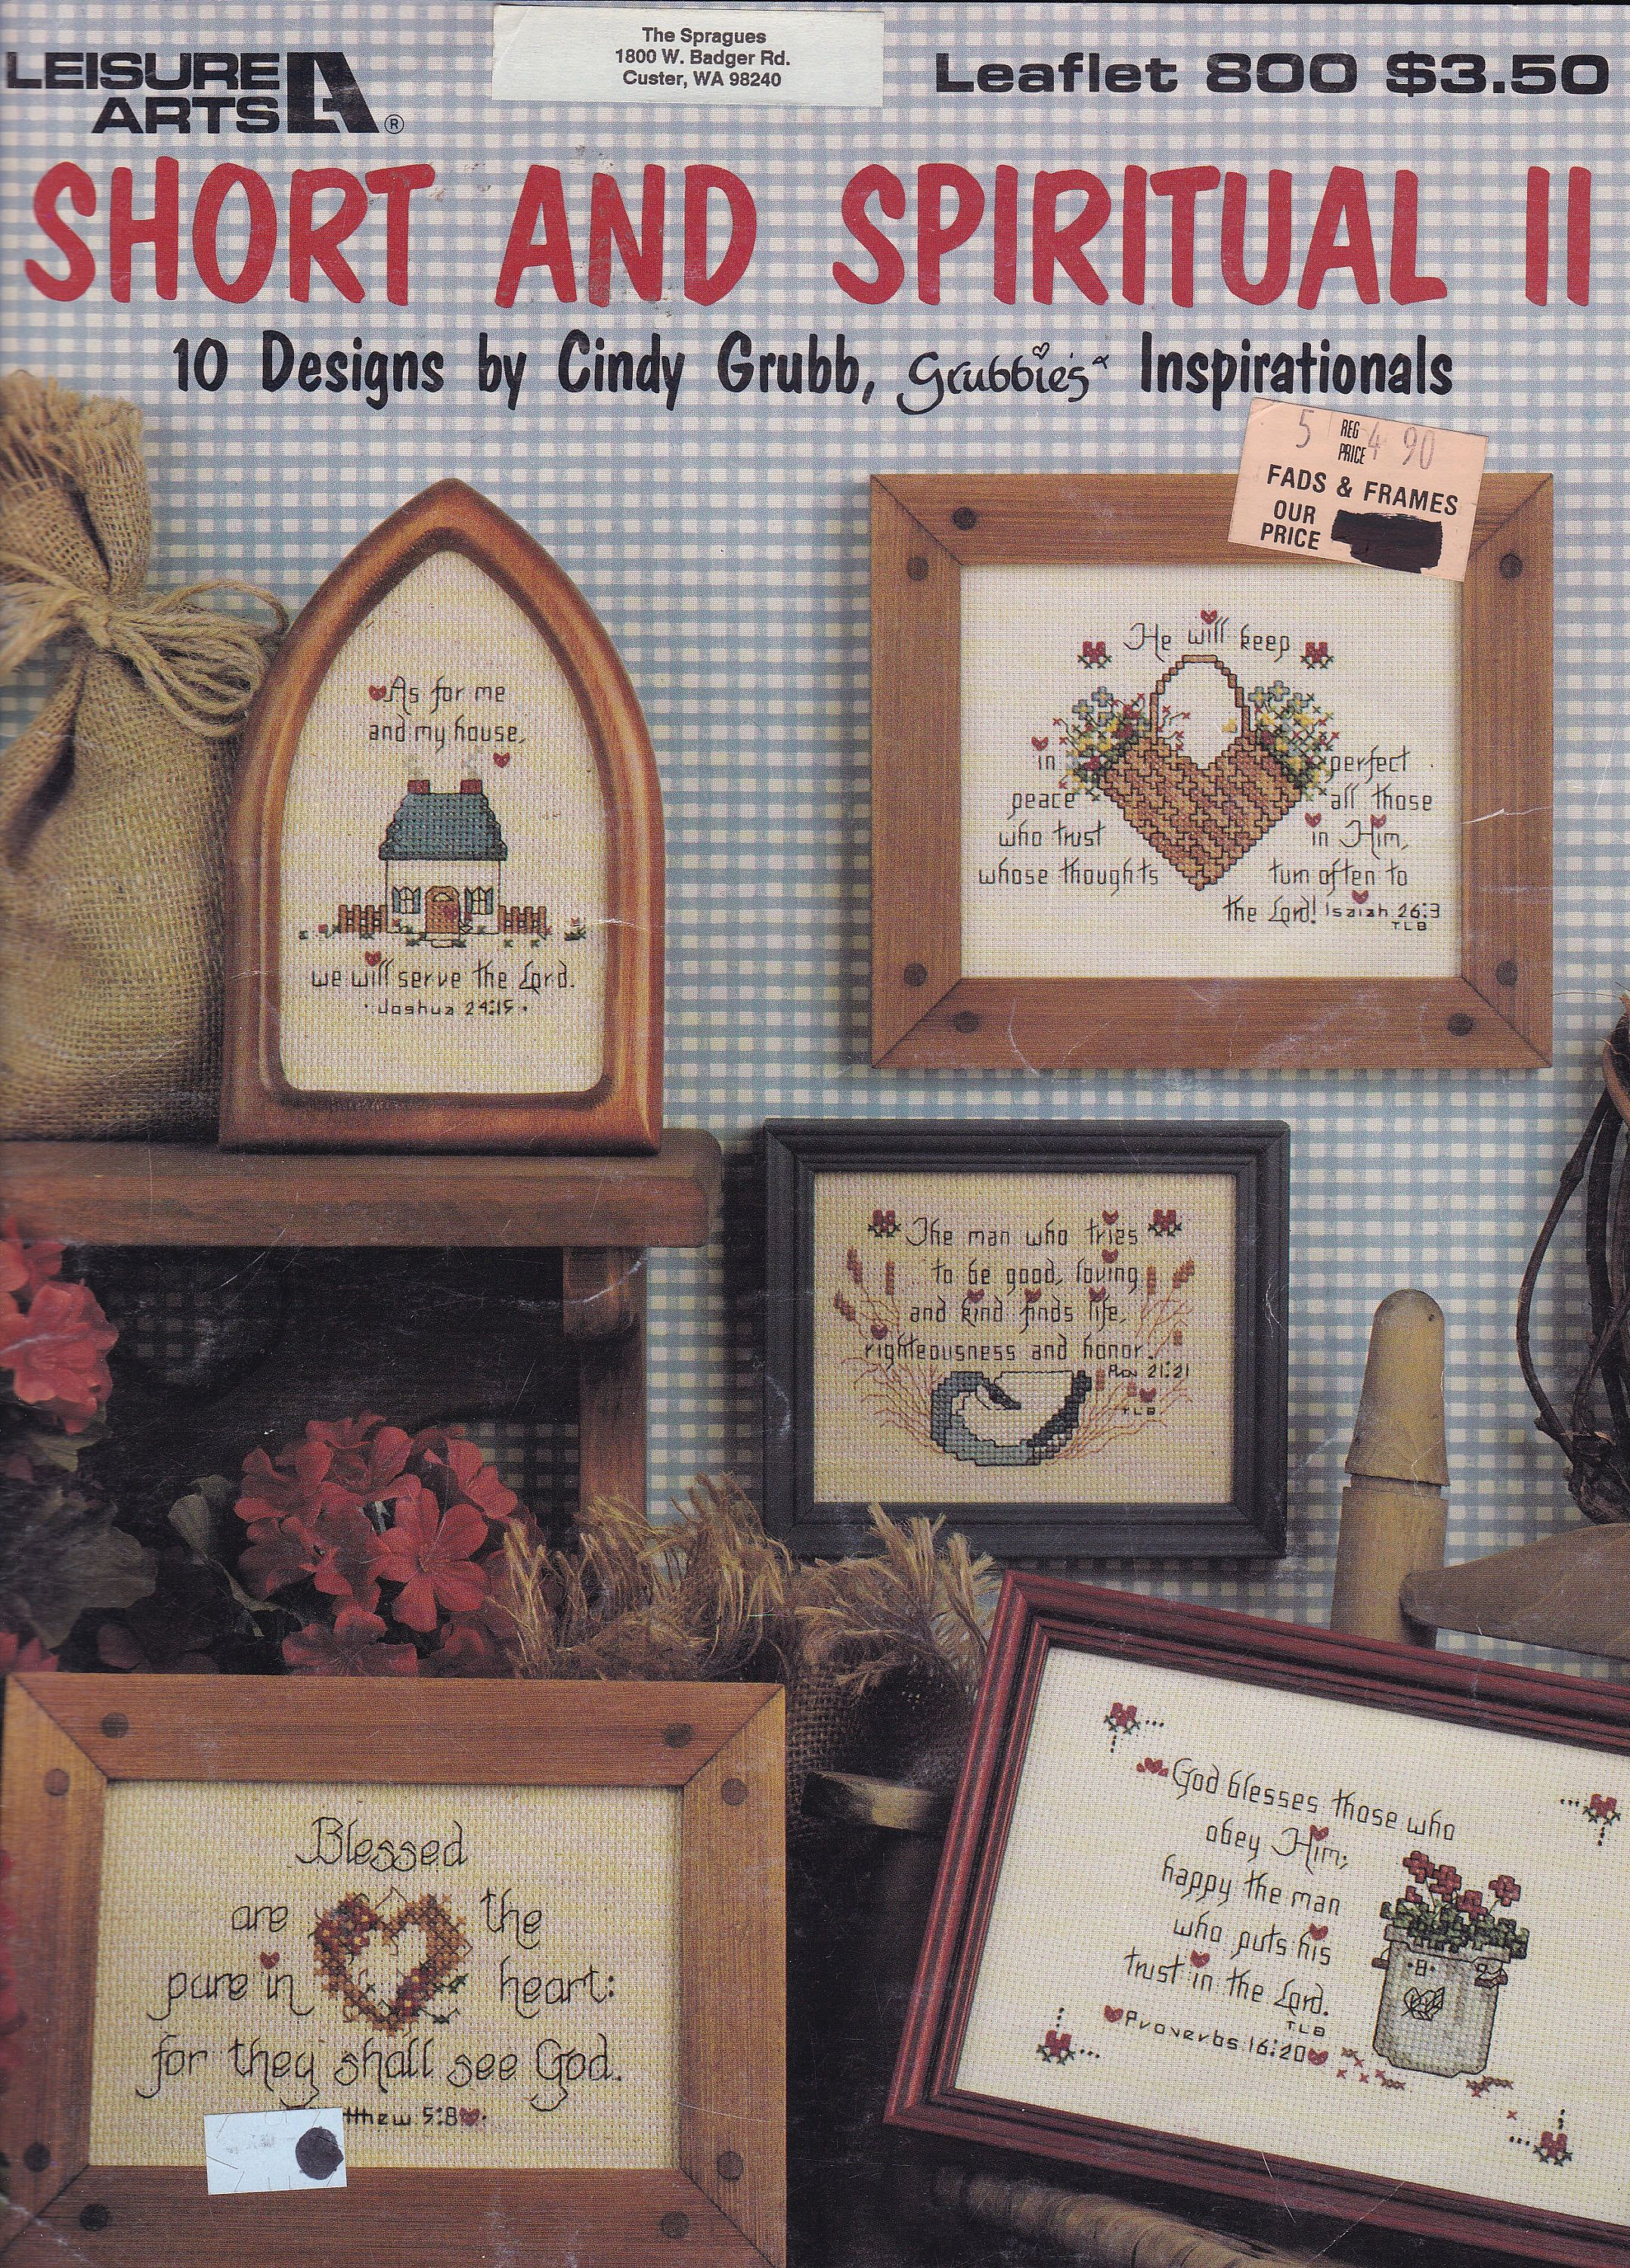 FREE US SHIP Leisure Arts Leaflet 800 Short Spiritual Ll Bible Verses 1989 Heart Basket Cindy Grubb Embroidery Cross Stitch By LanetzLiving On Etsy